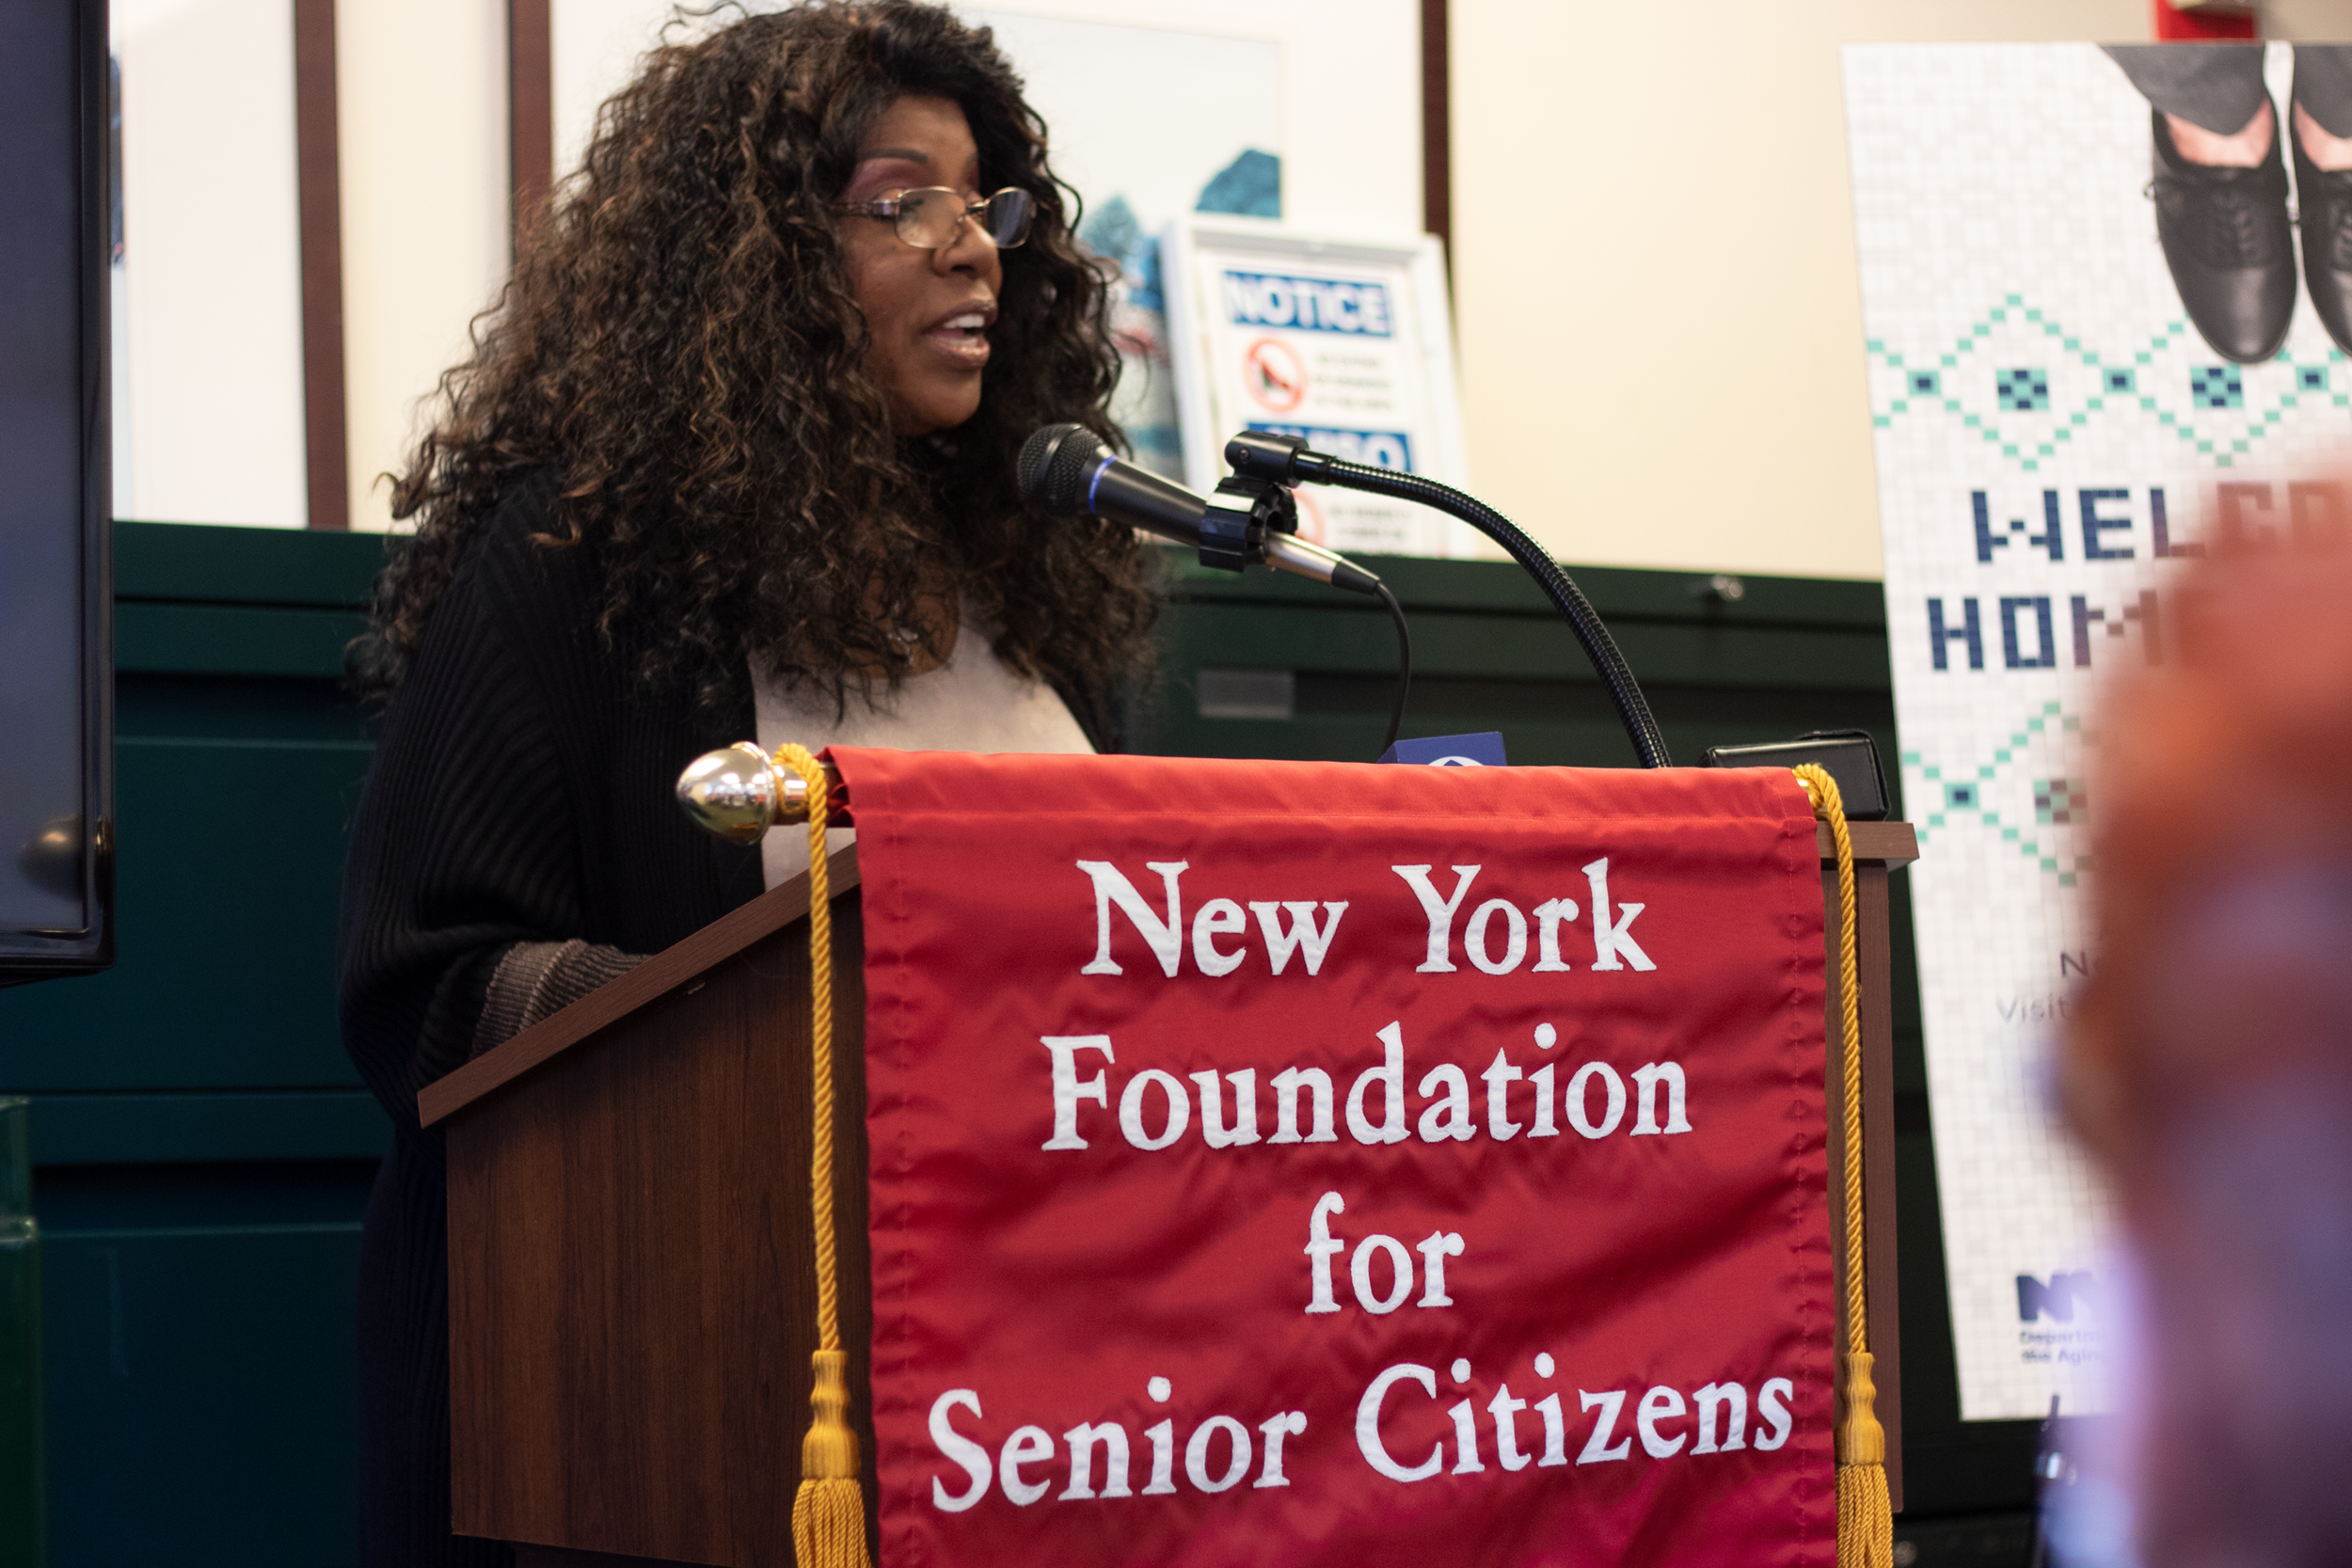 Disco singer Gloria Gaynor was recently named a spokesperson for the Home Sharing program.